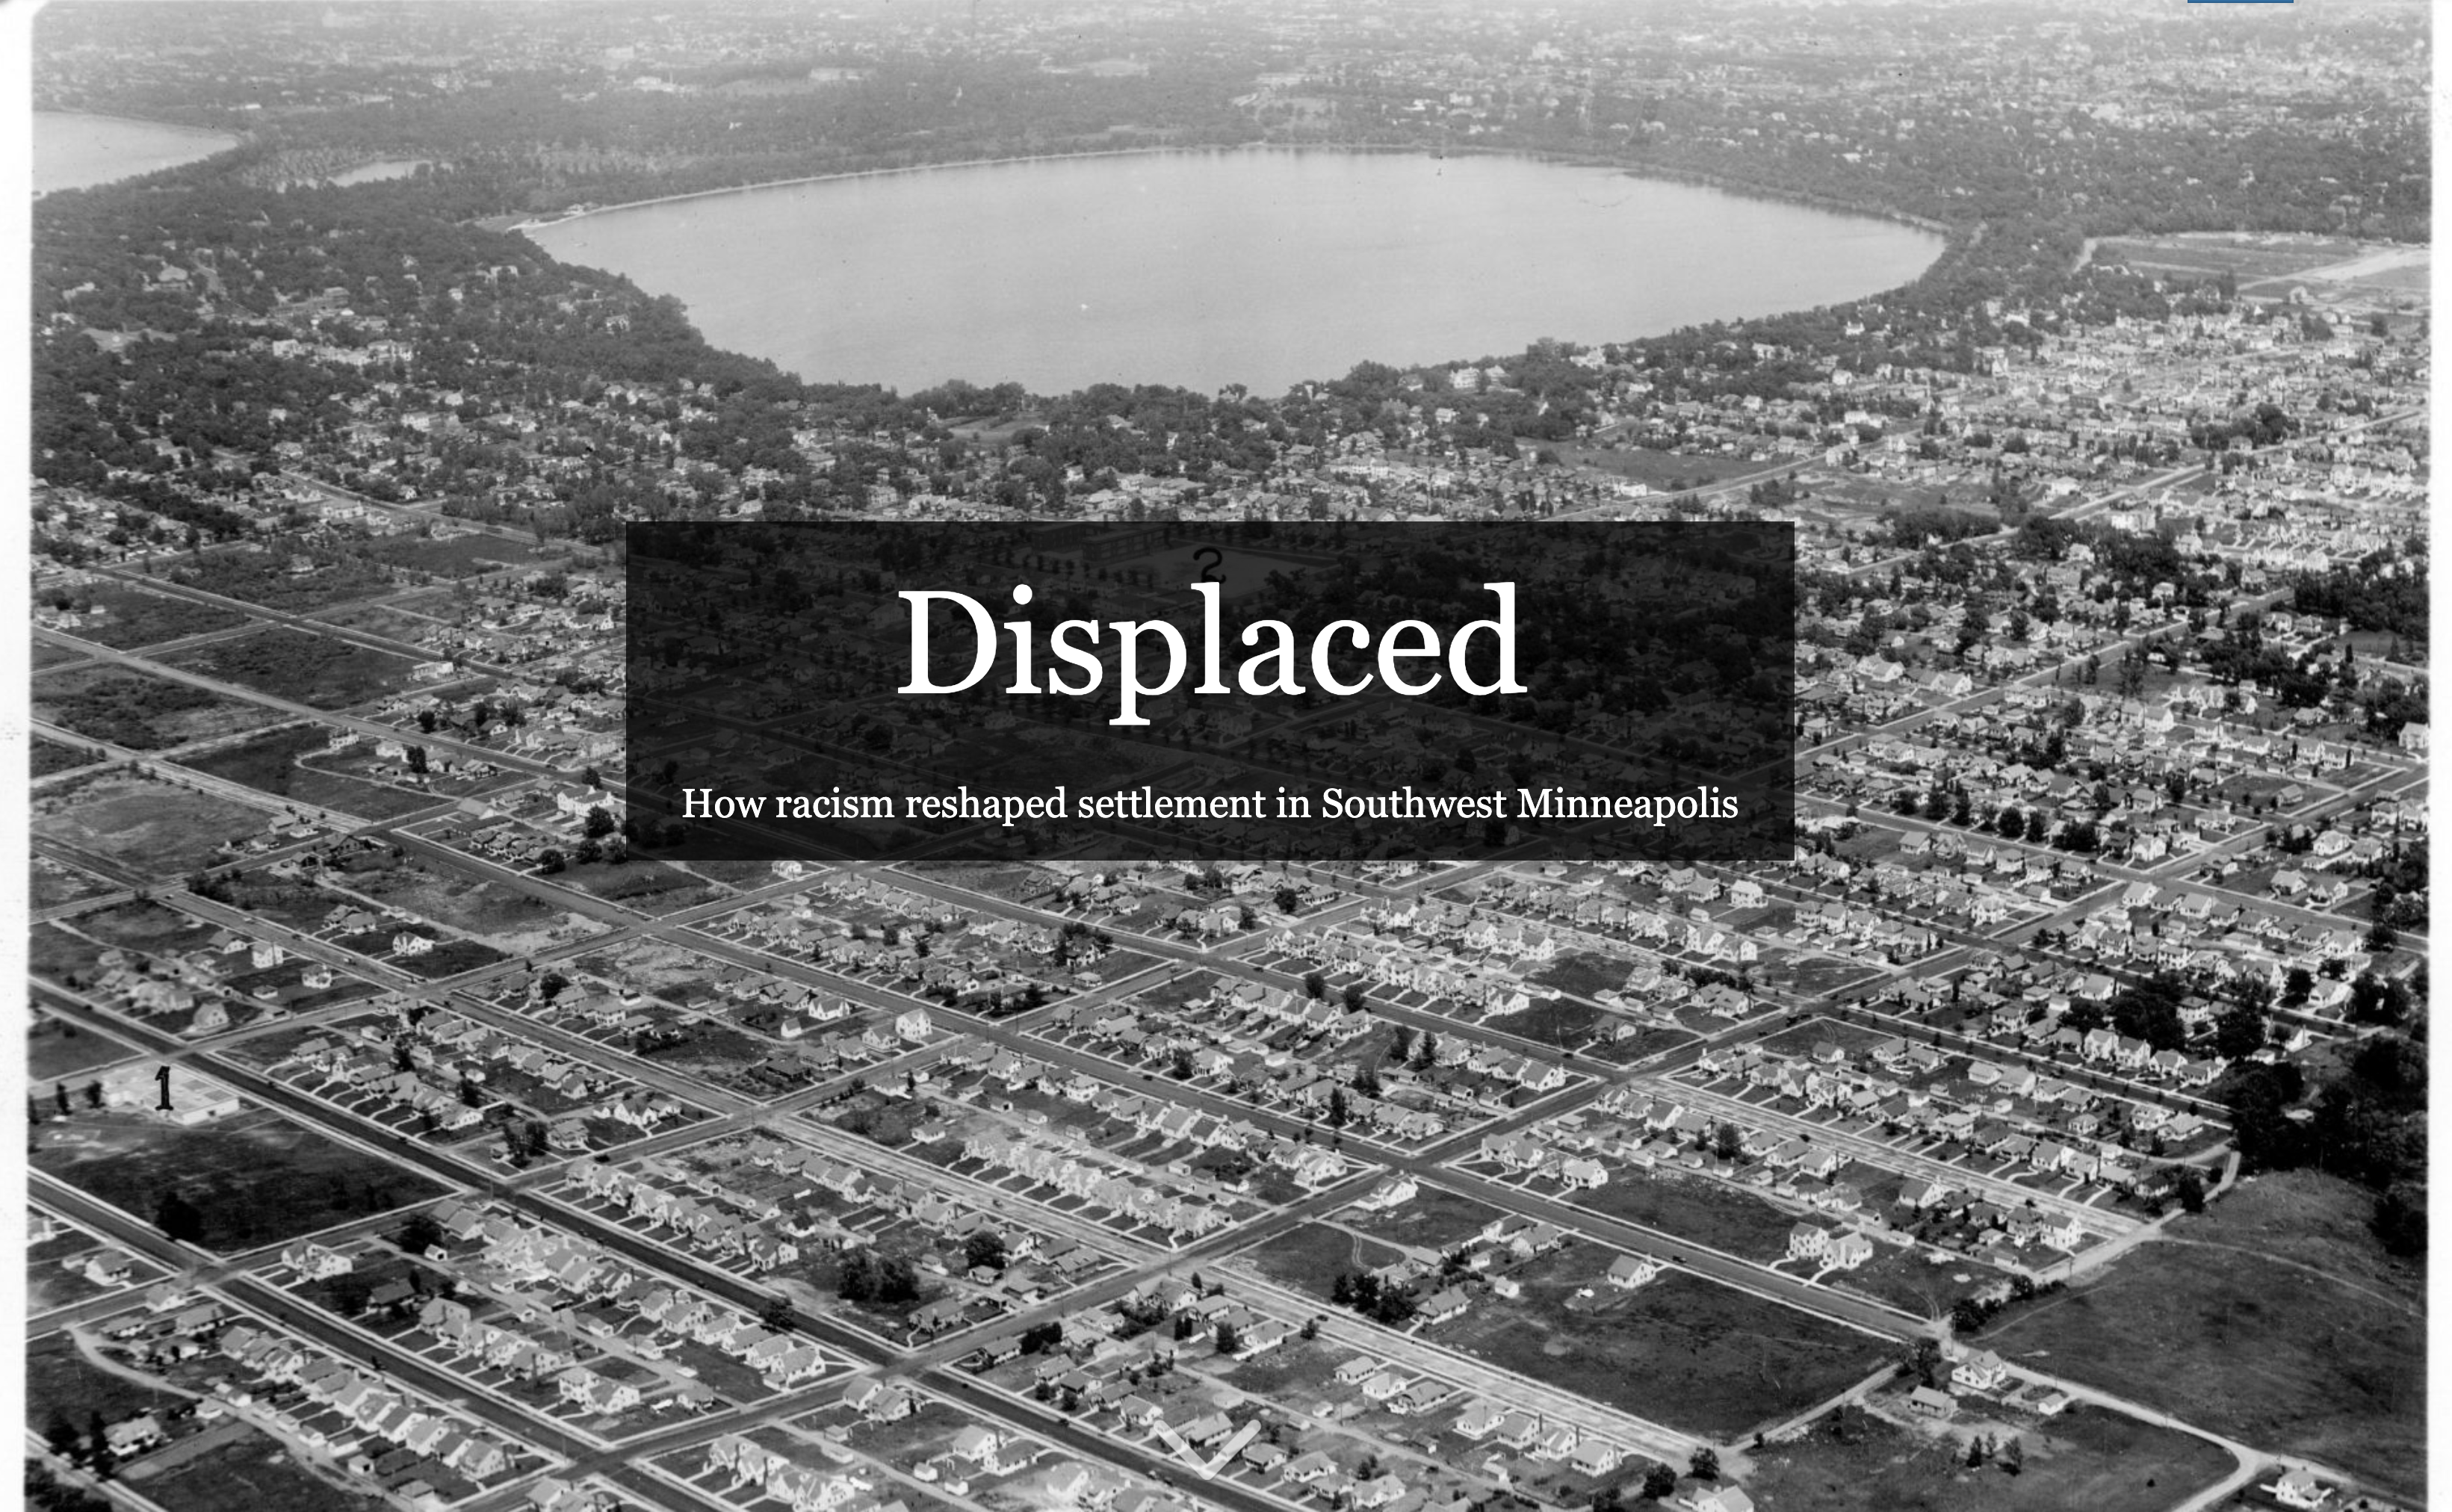 "an event poster for Tuesday, June 11th: ""Displaced"" exhibit opening at Linden Hills library."